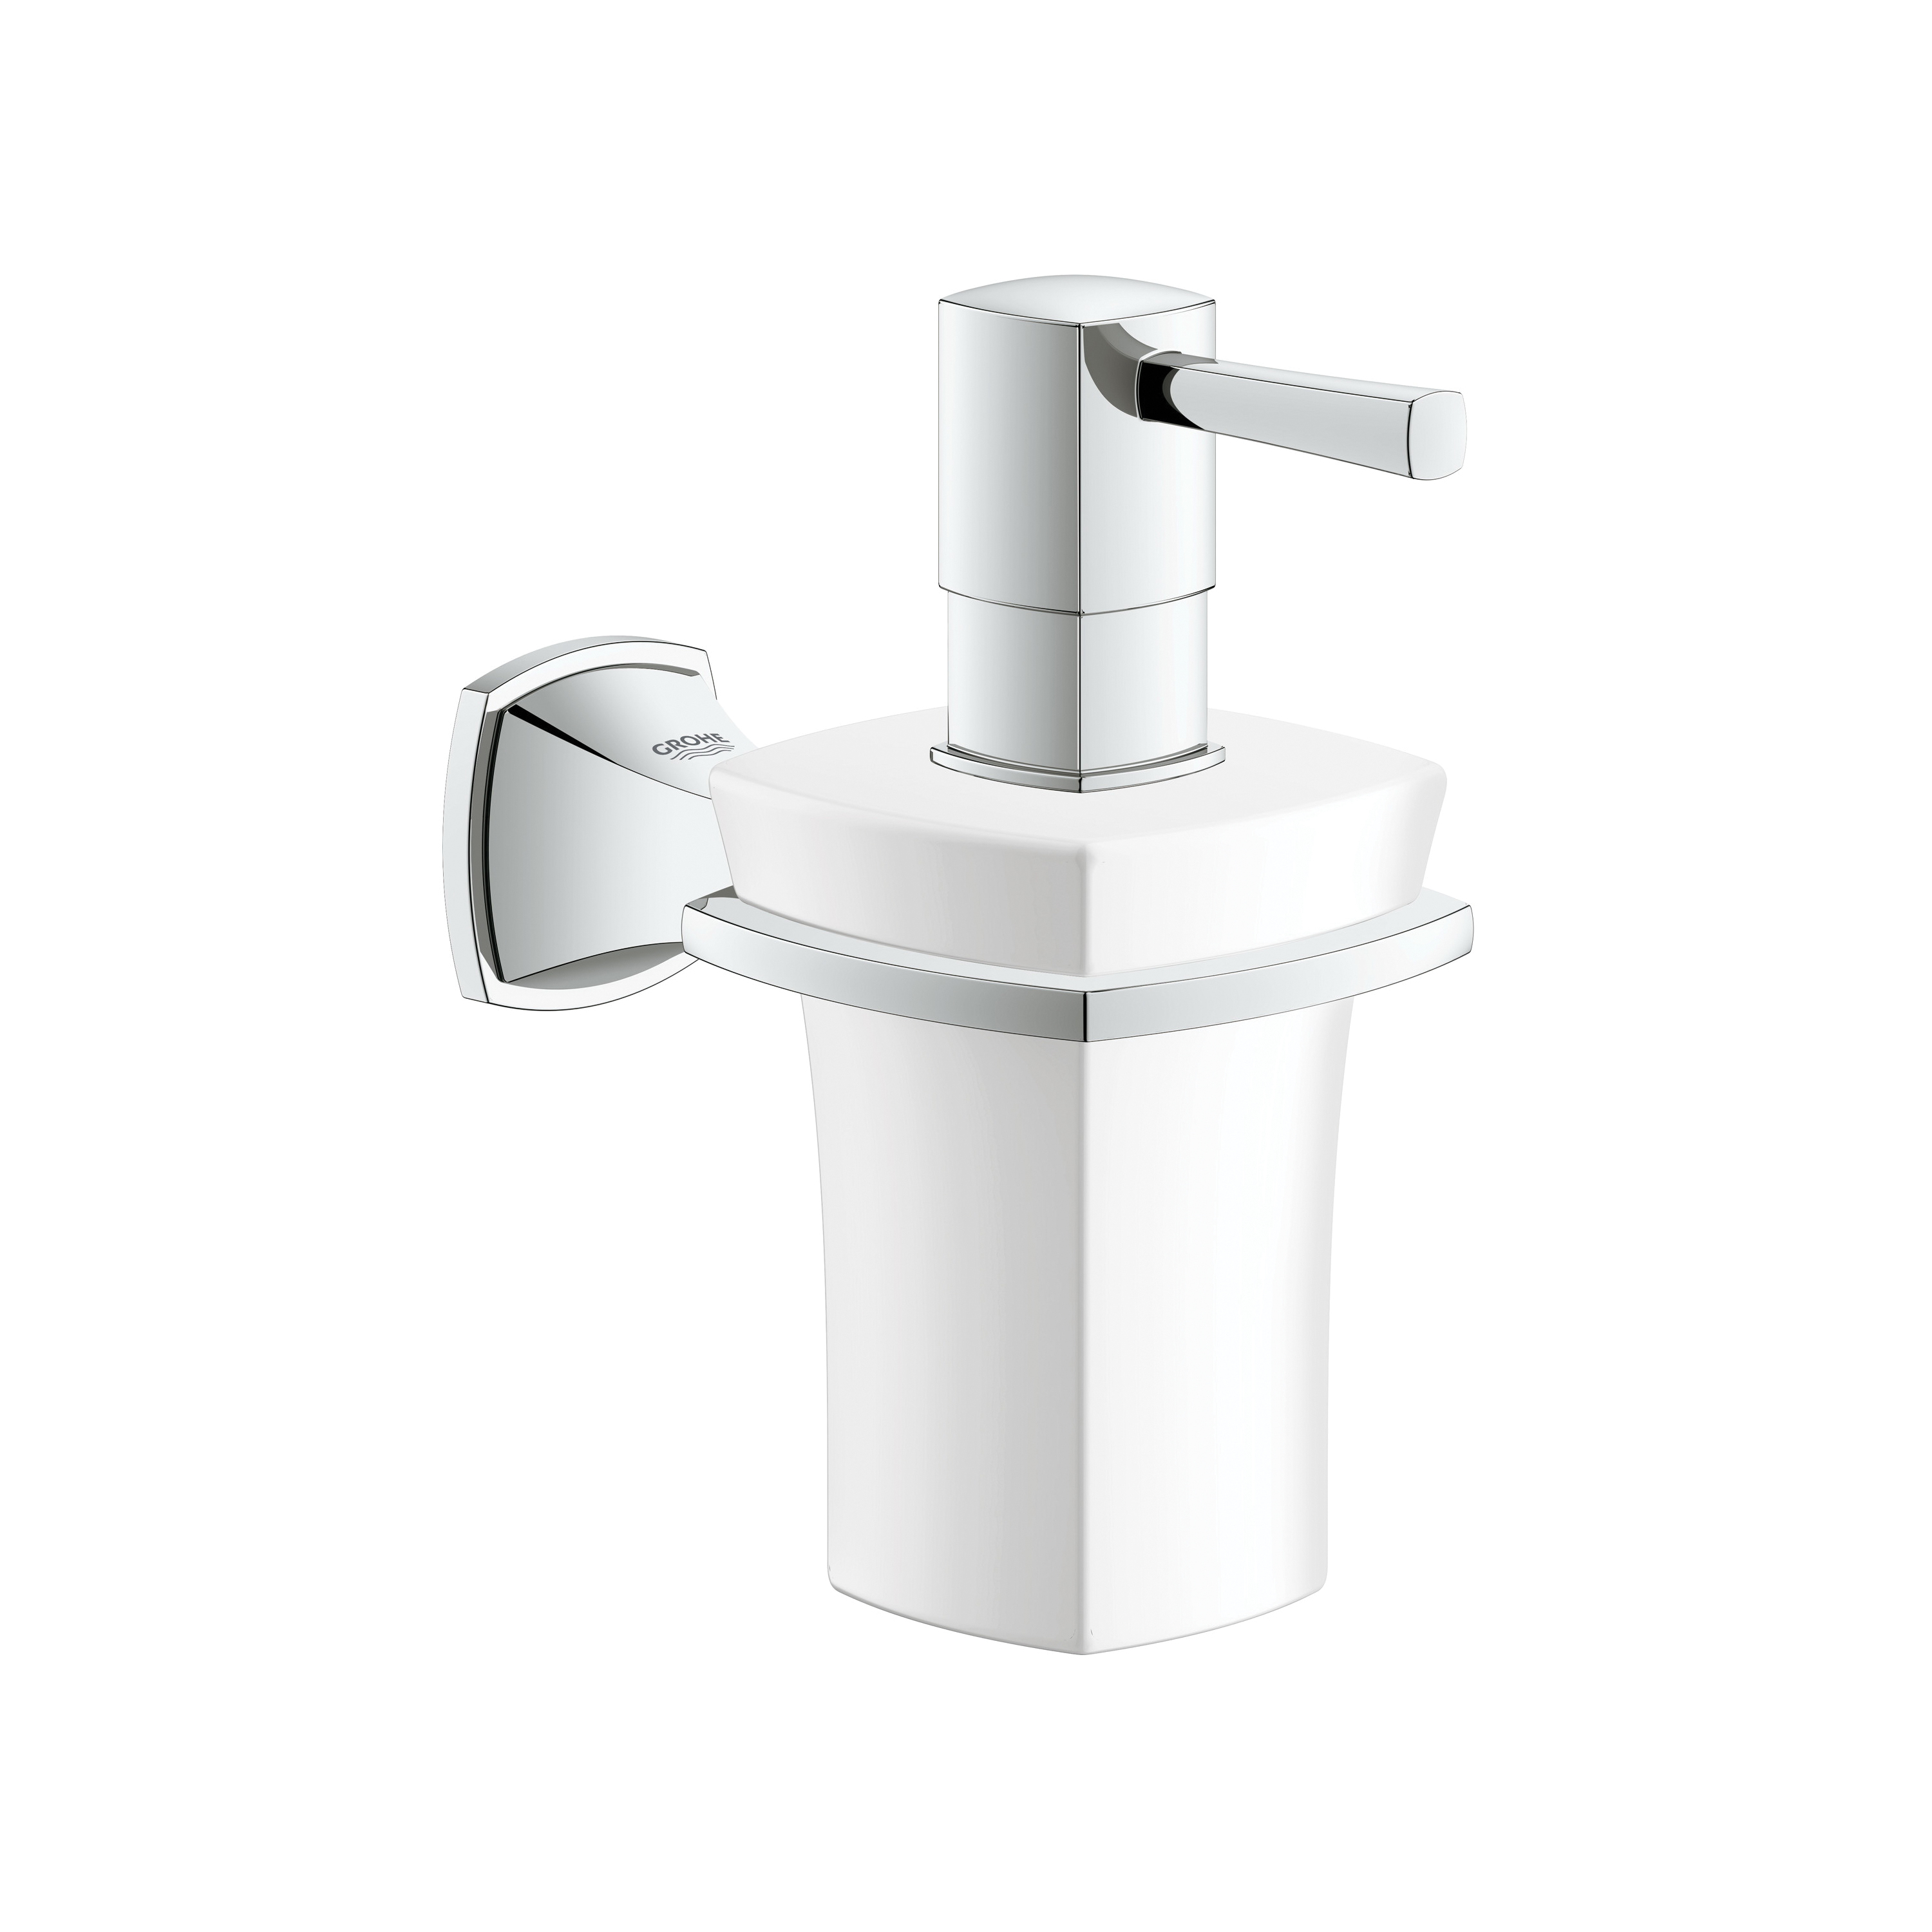 GROHE 40627000 Grandera™ Soap Dispenser With Holder, StarLight® Chrome, 5-13/16 in OAL, Ceramic, Import